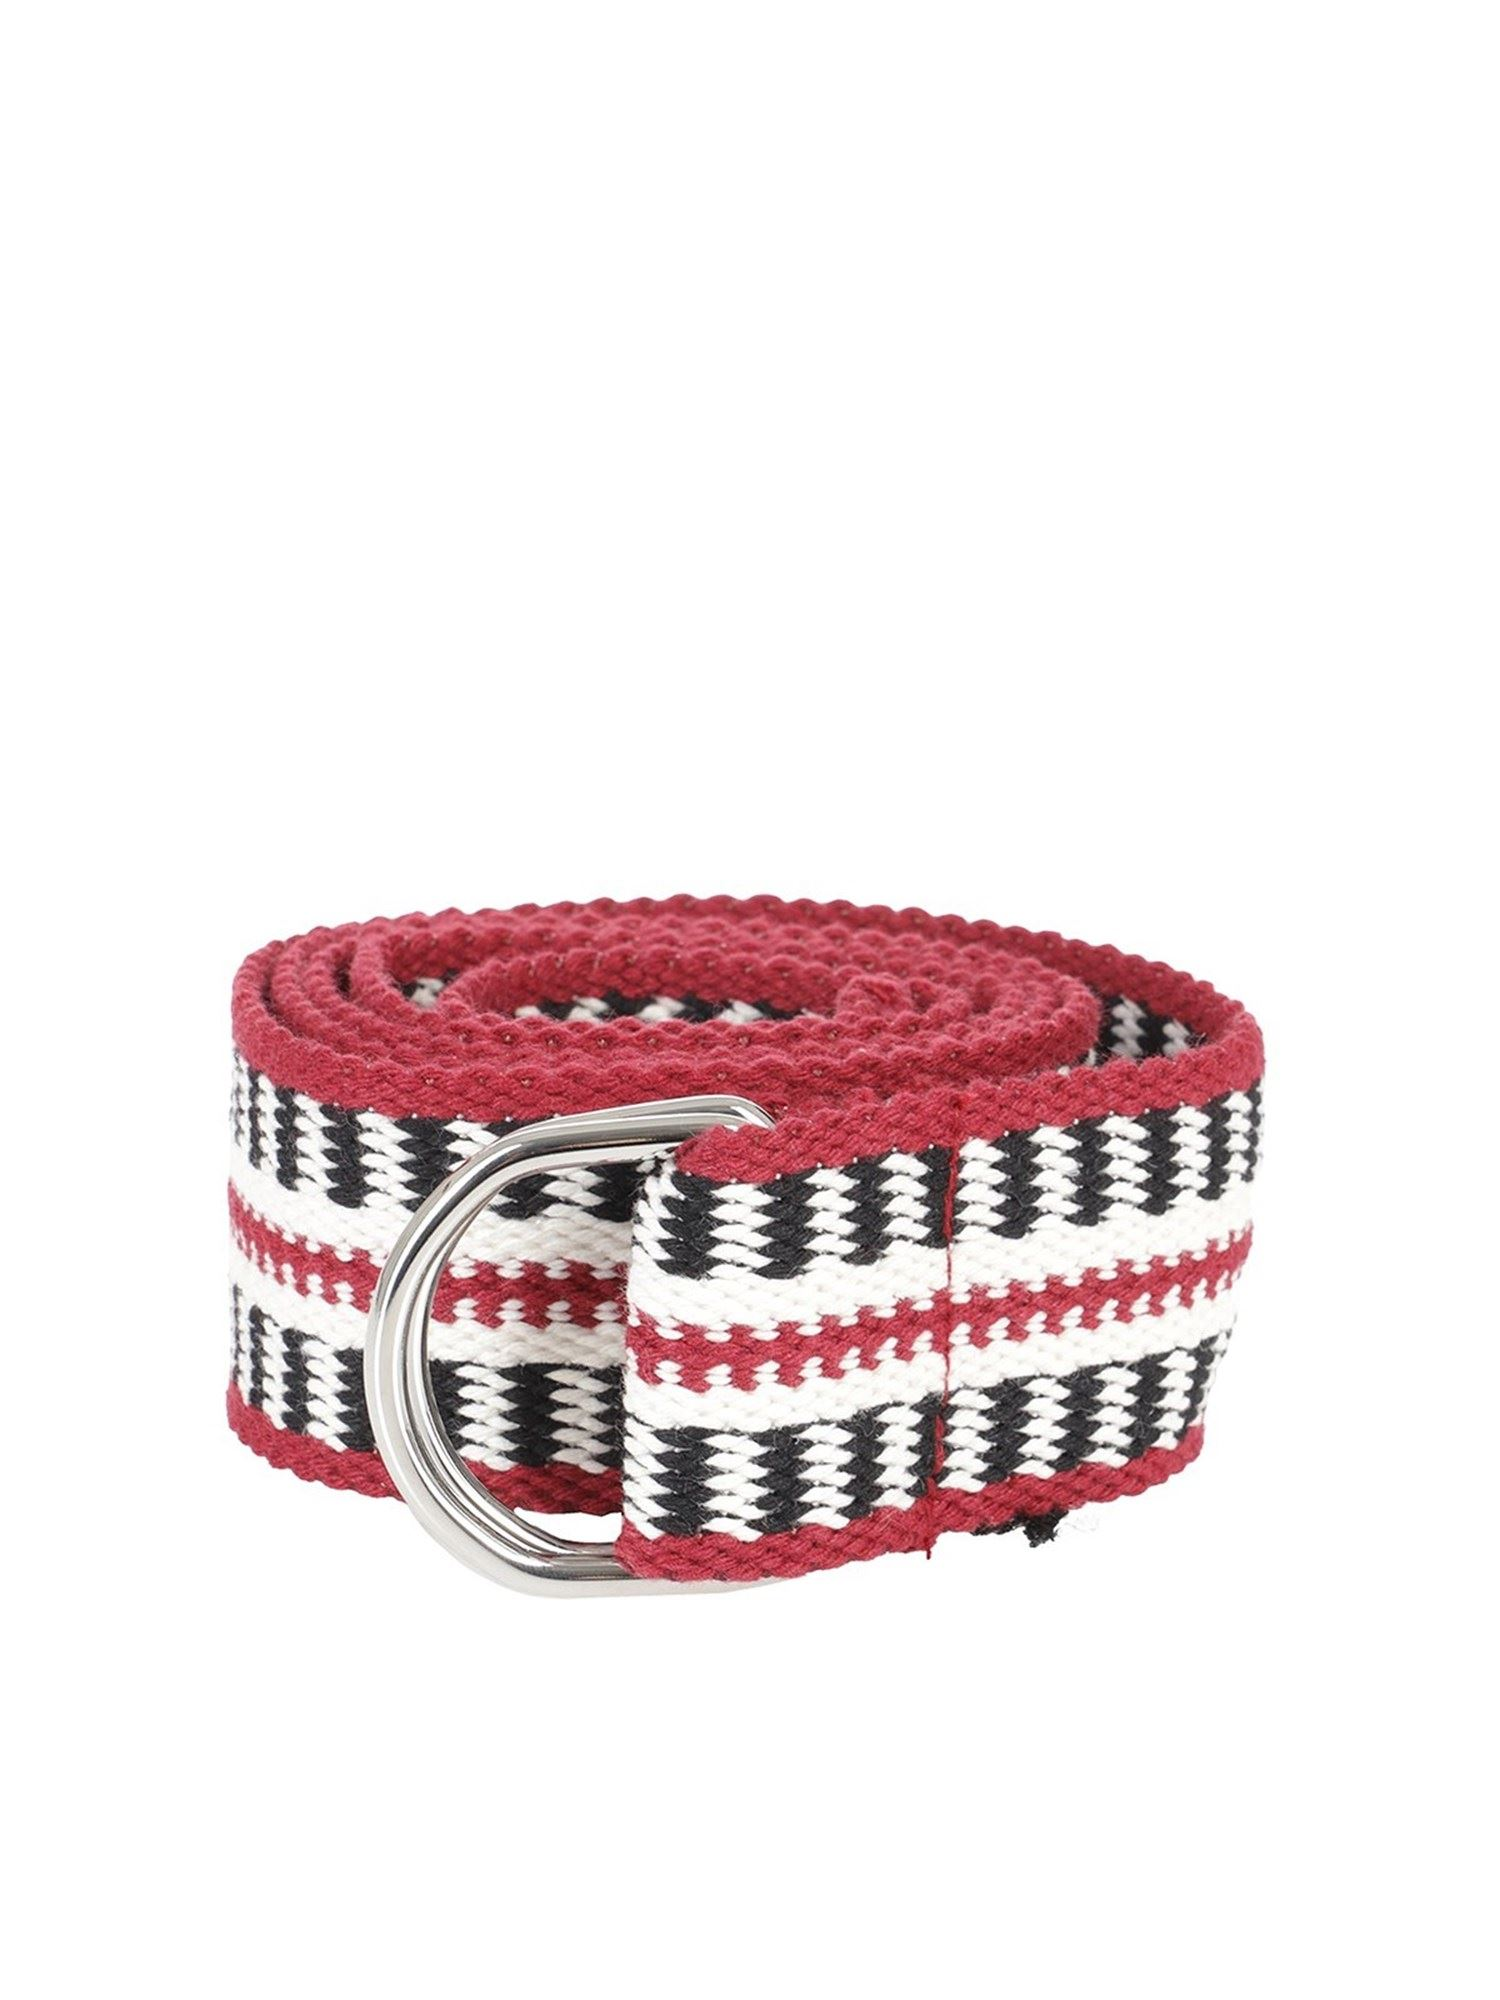 Isabel Marant ISABEL MARANT NYESS BELT IN RED